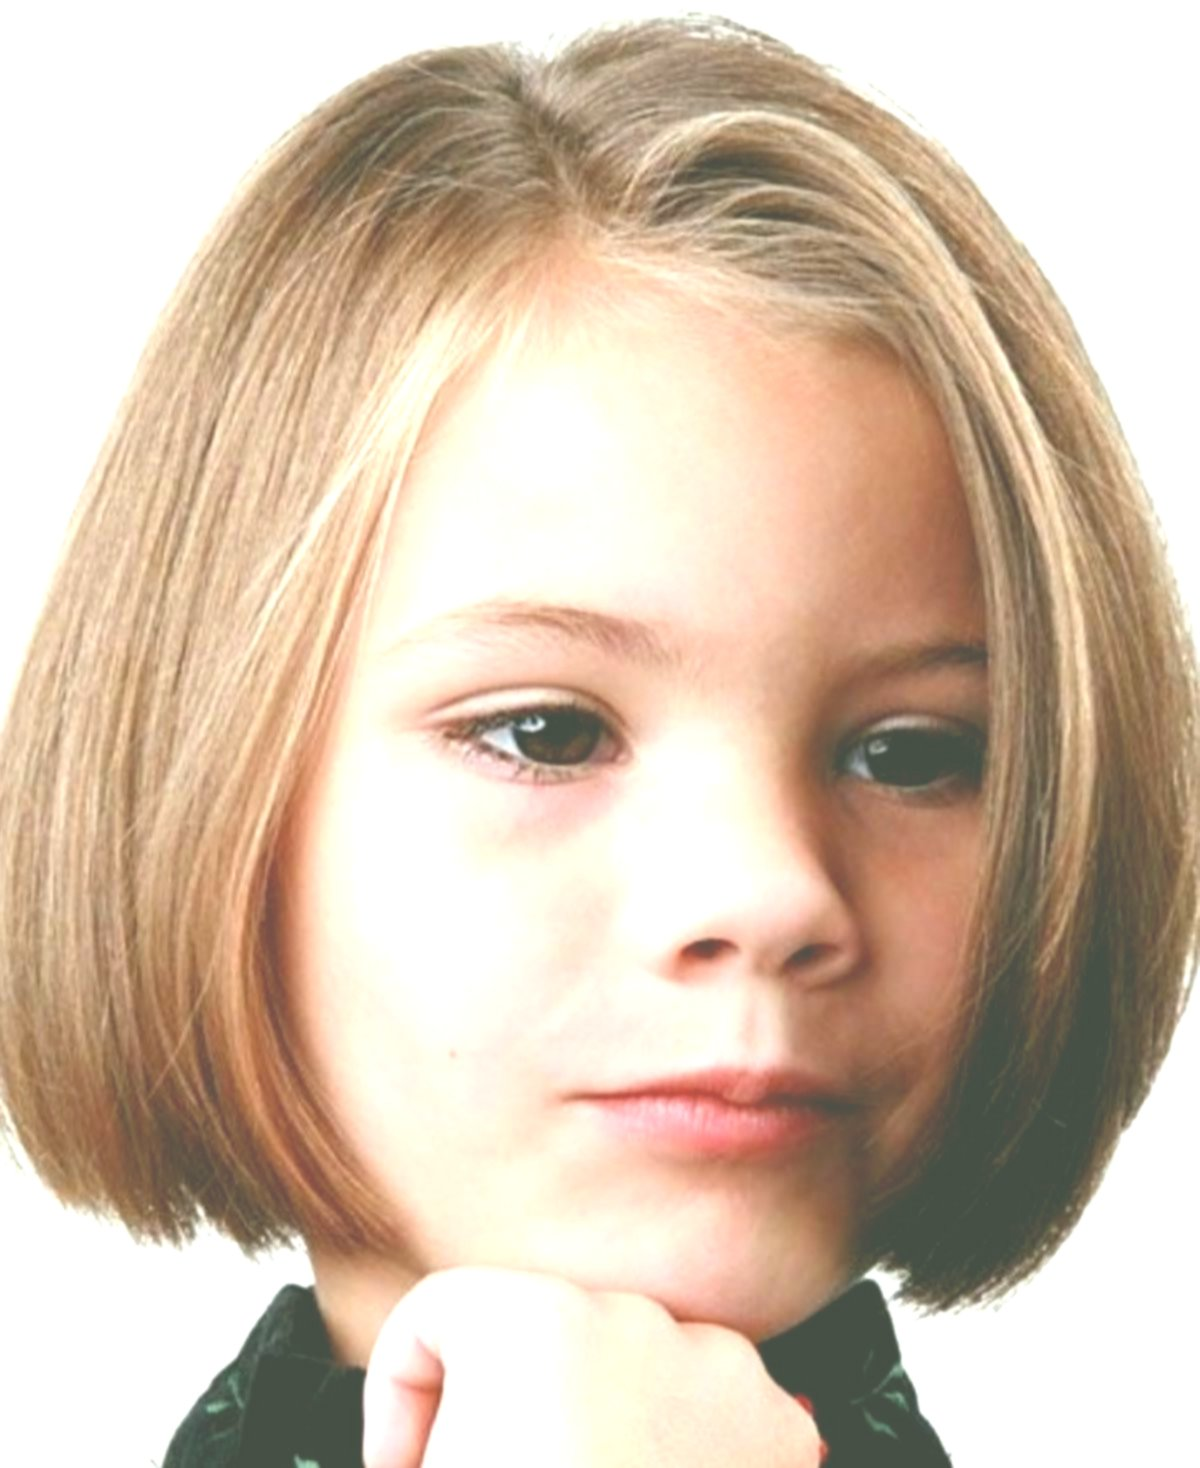 luxury bob hairstyles kids model-New Bob Hairstyles Kids Photography